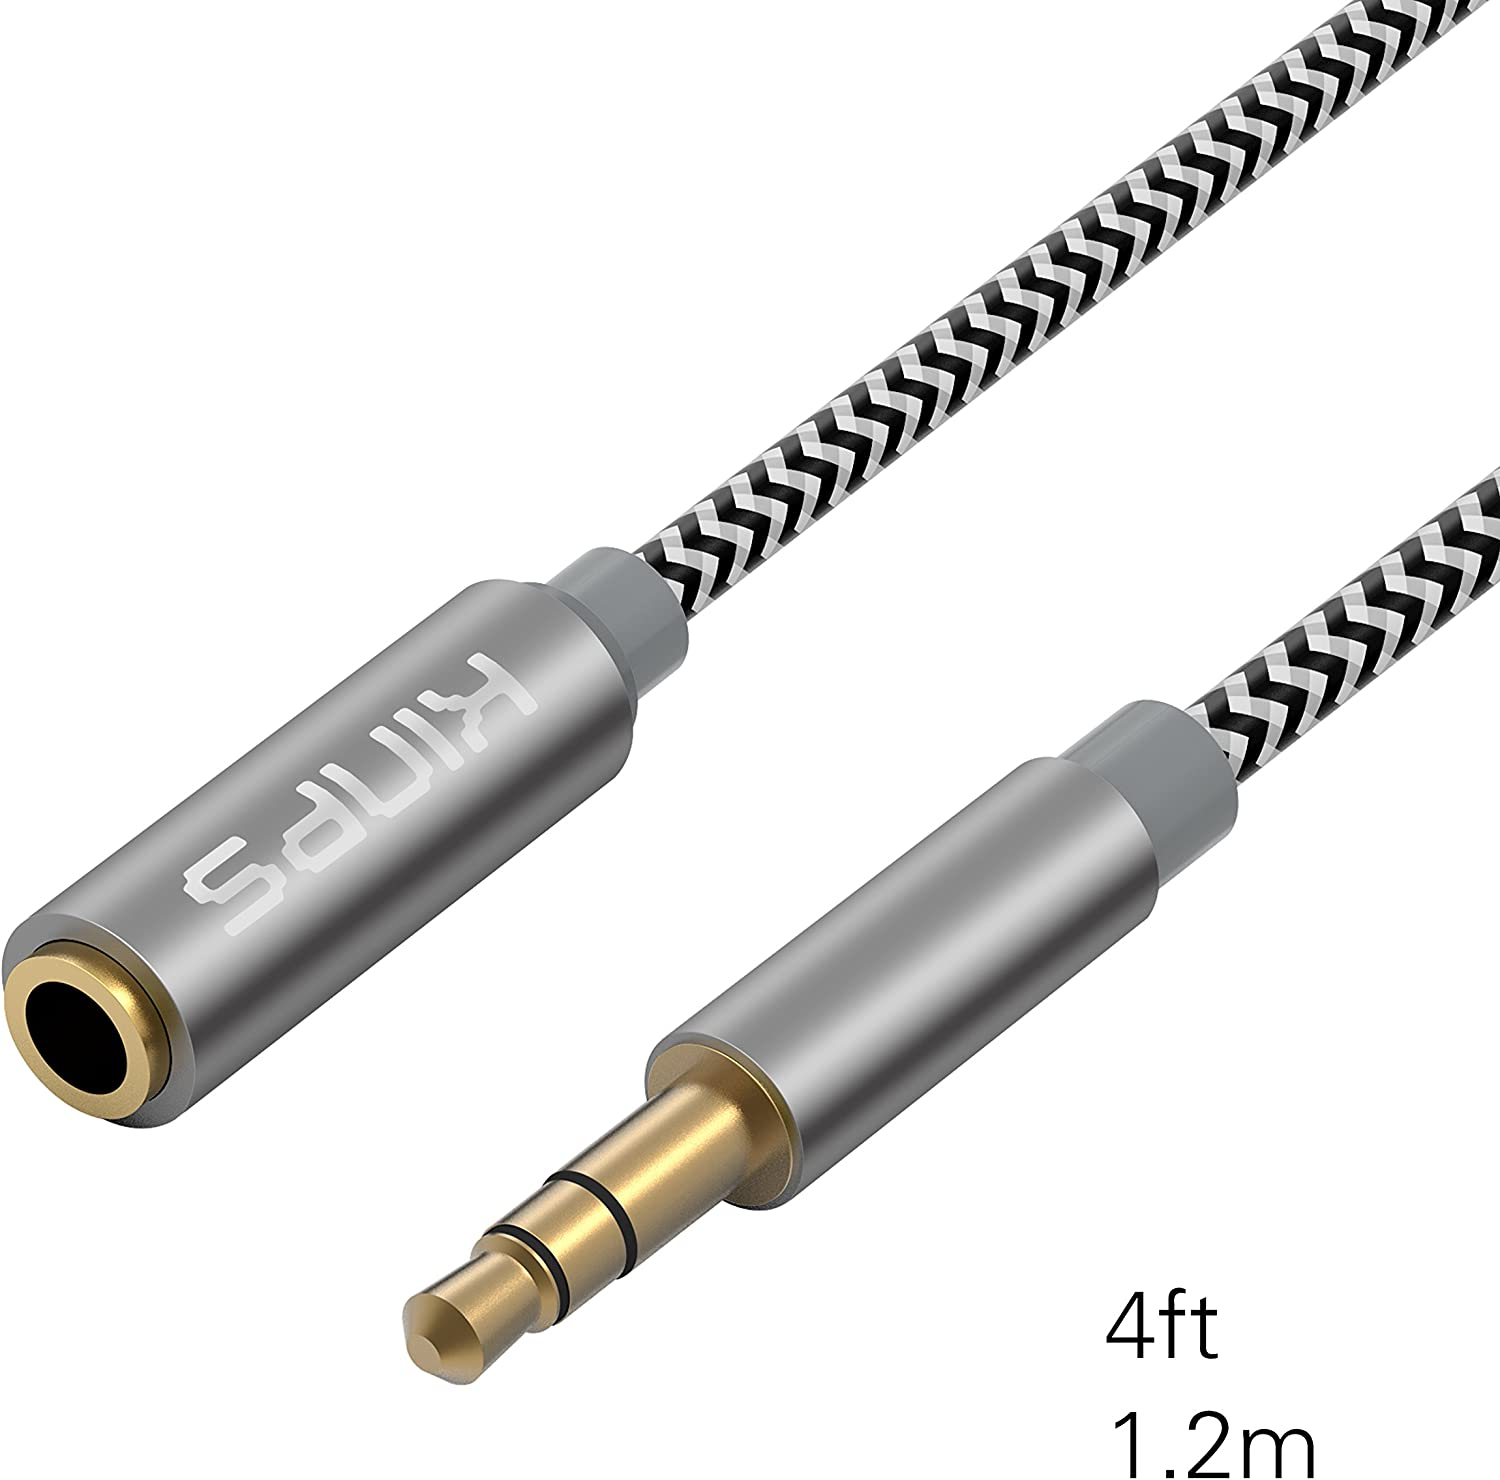 KINPS Audio Auxiliary Stereo Extension Audio Cable 3.5mm Stereo Jack Male to Female, Stereo Jack Cord for Phones, Headphones, Speakers, Tablets, PCs, MP3 Players and More (4ft/1.2m, Black)